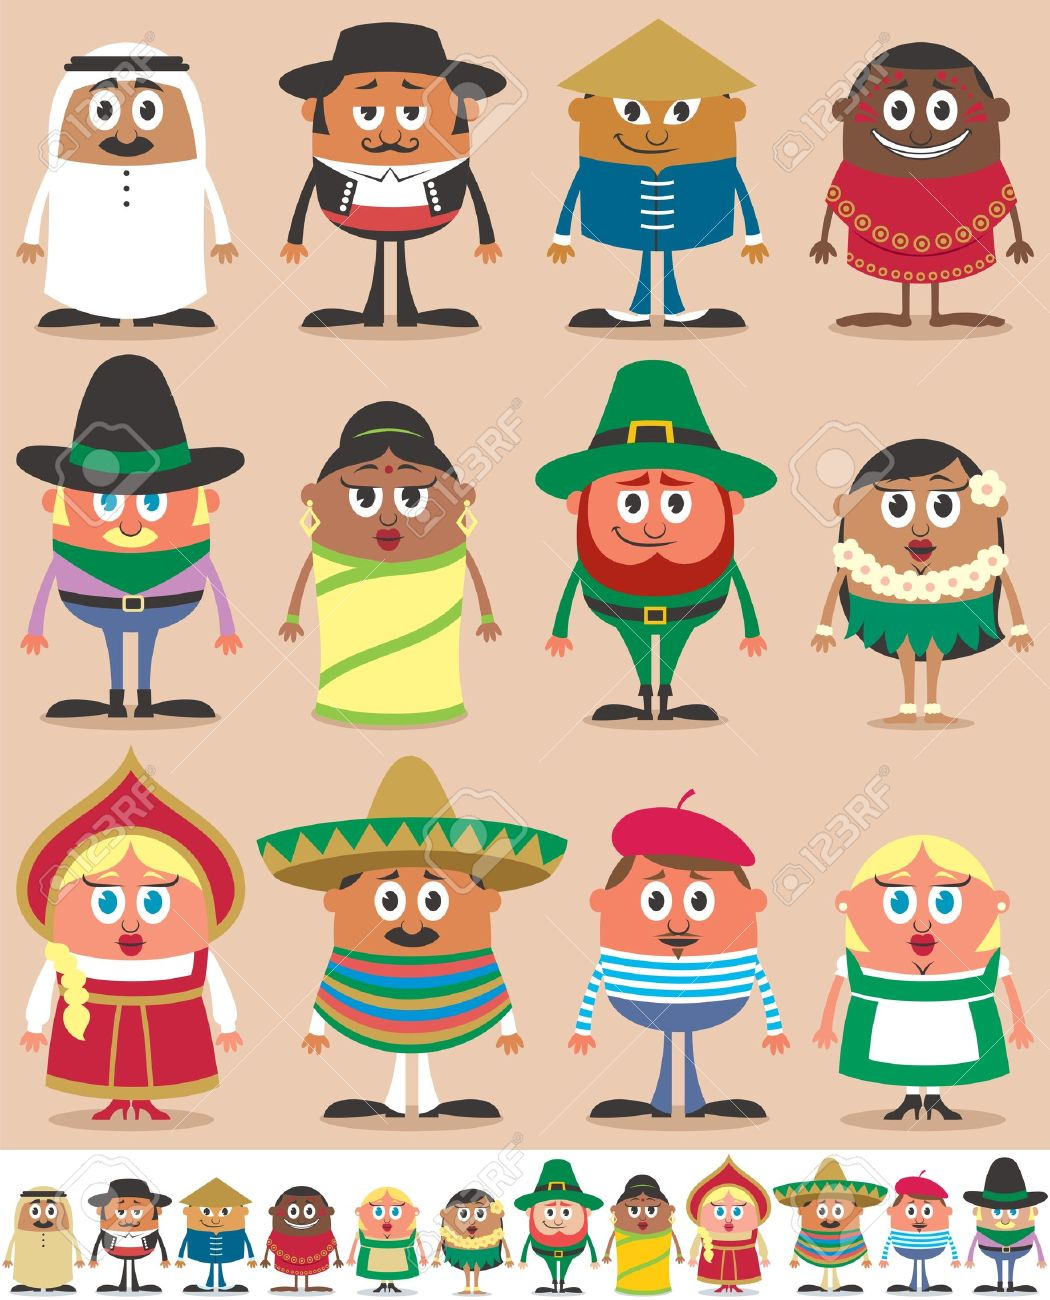 Set of 12 characters dressed in different national costumes. Each character is in 2 color versions depending on the background. No transparency and gradients used. Stock Vector - 18952033